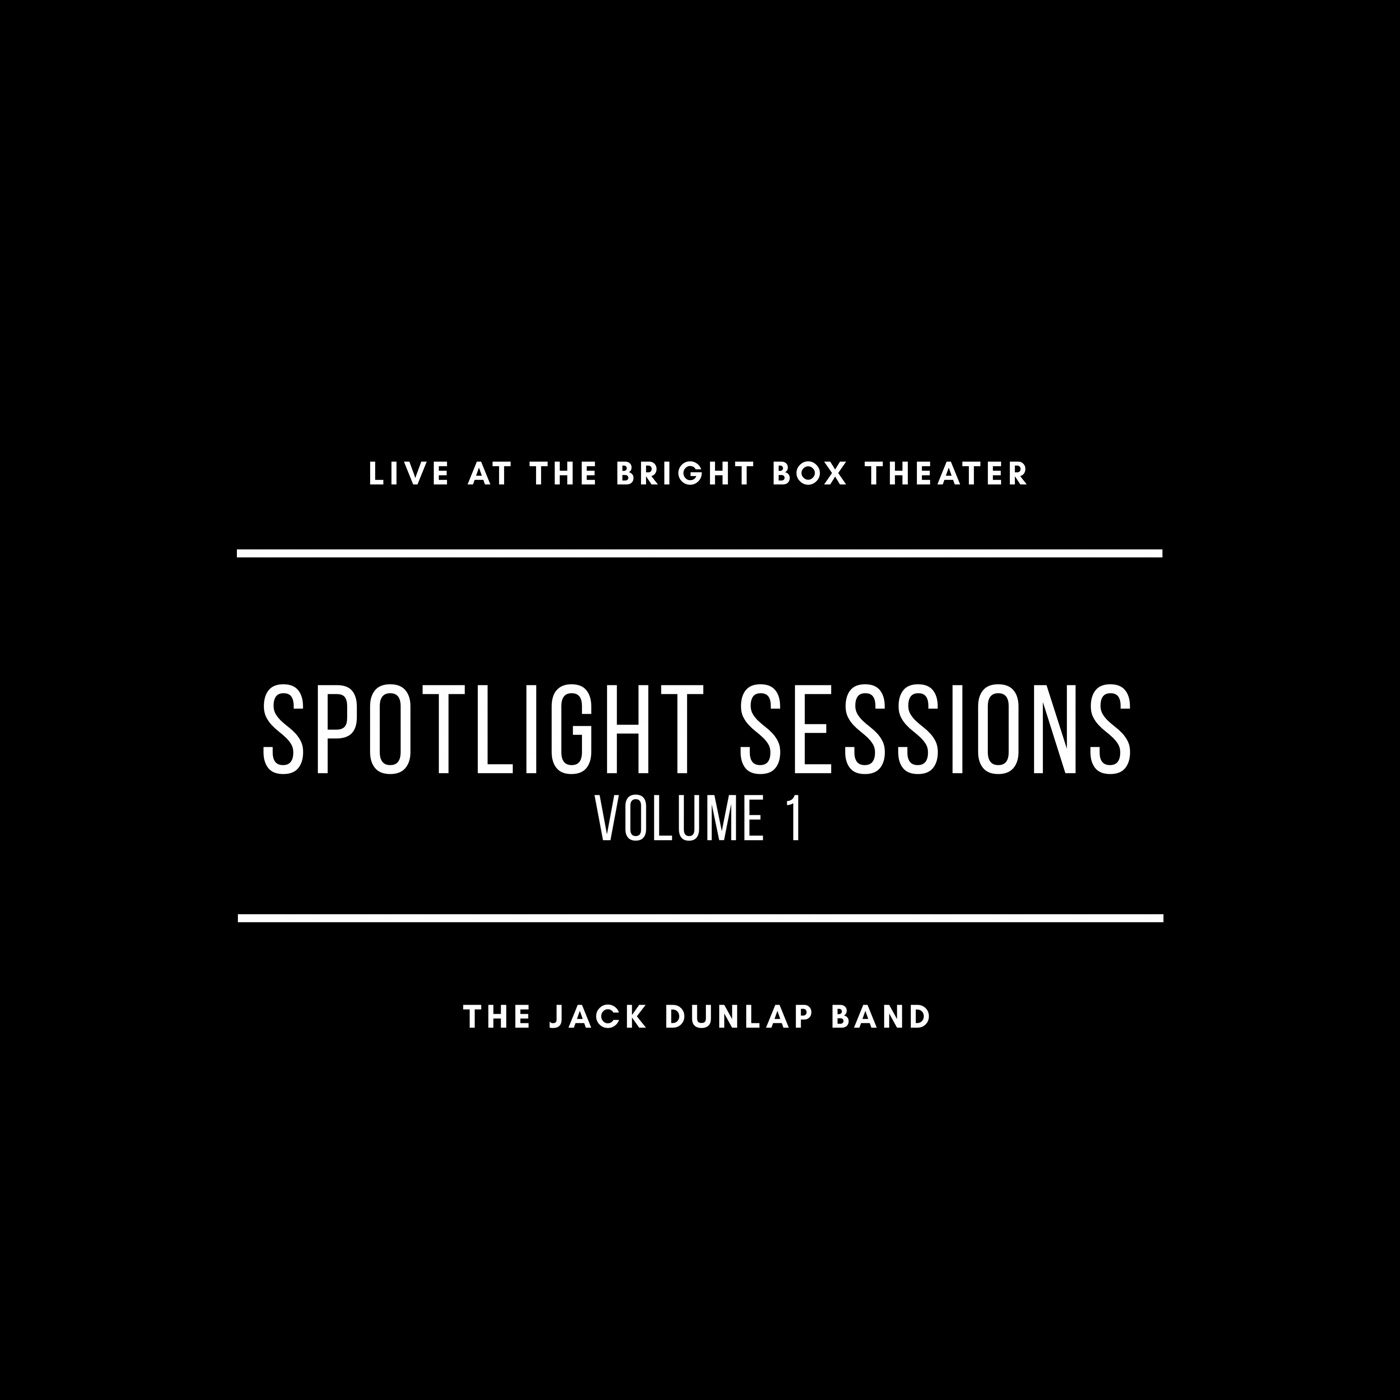 SPOTLIGHT SESSIONS: VOLUME 1 NOW AVAILABLE!